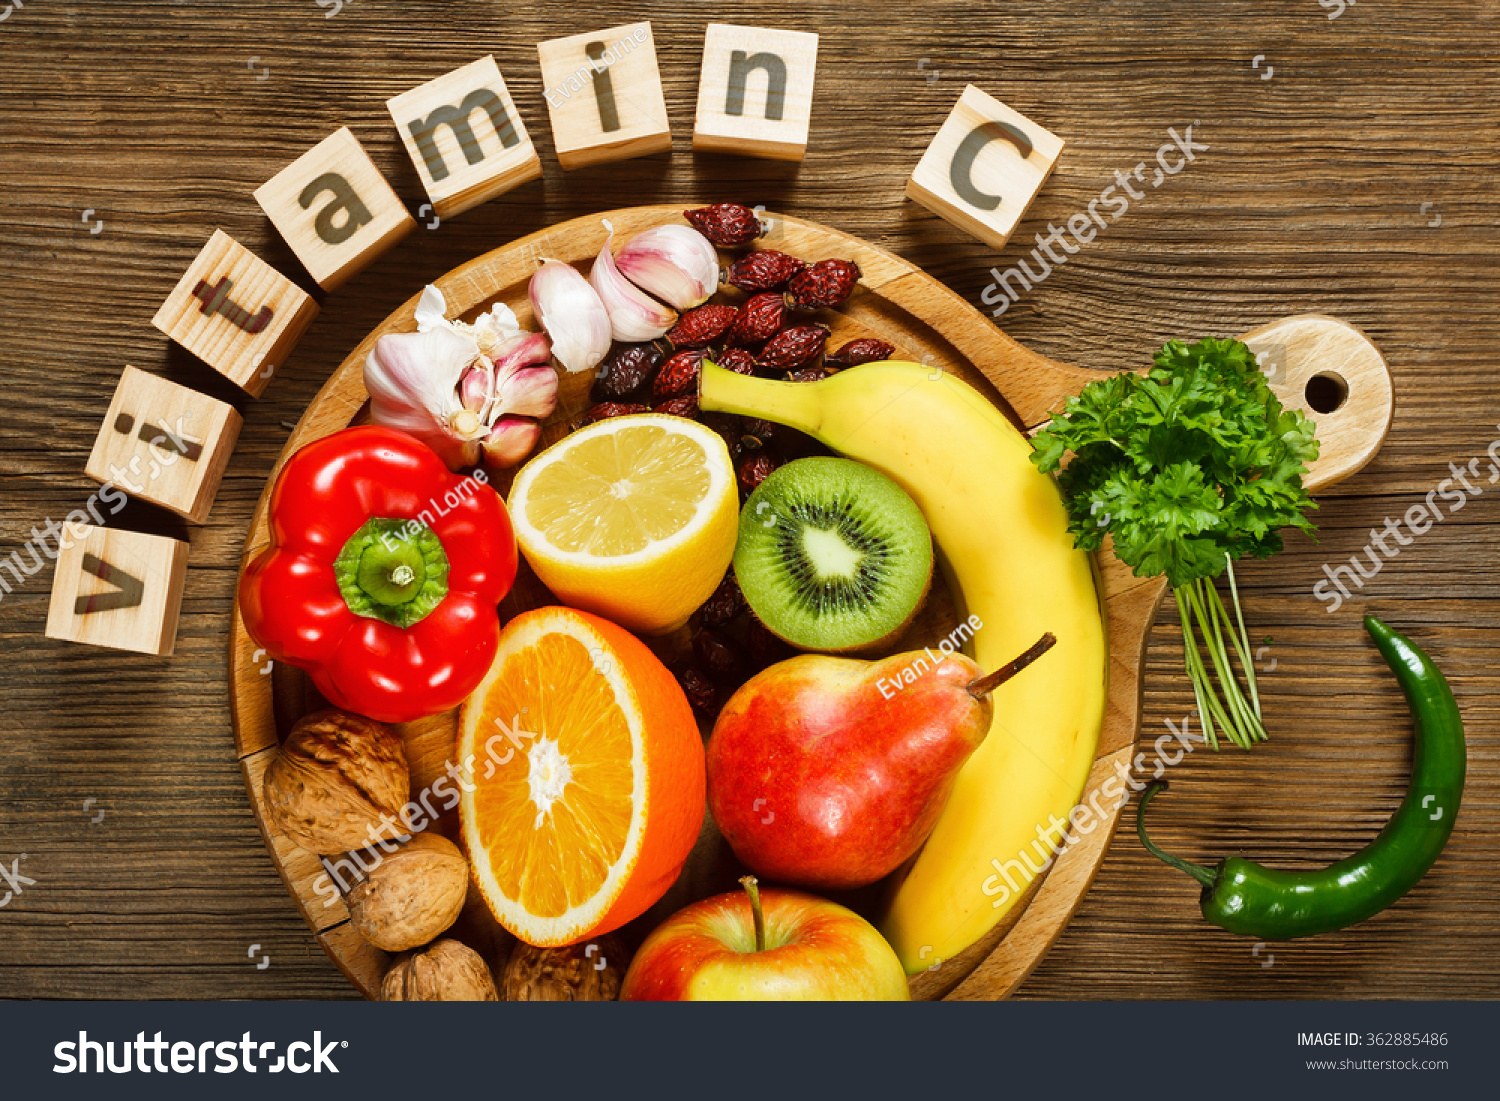 is tomato a fruit or a vegetable fruits with vitamin c